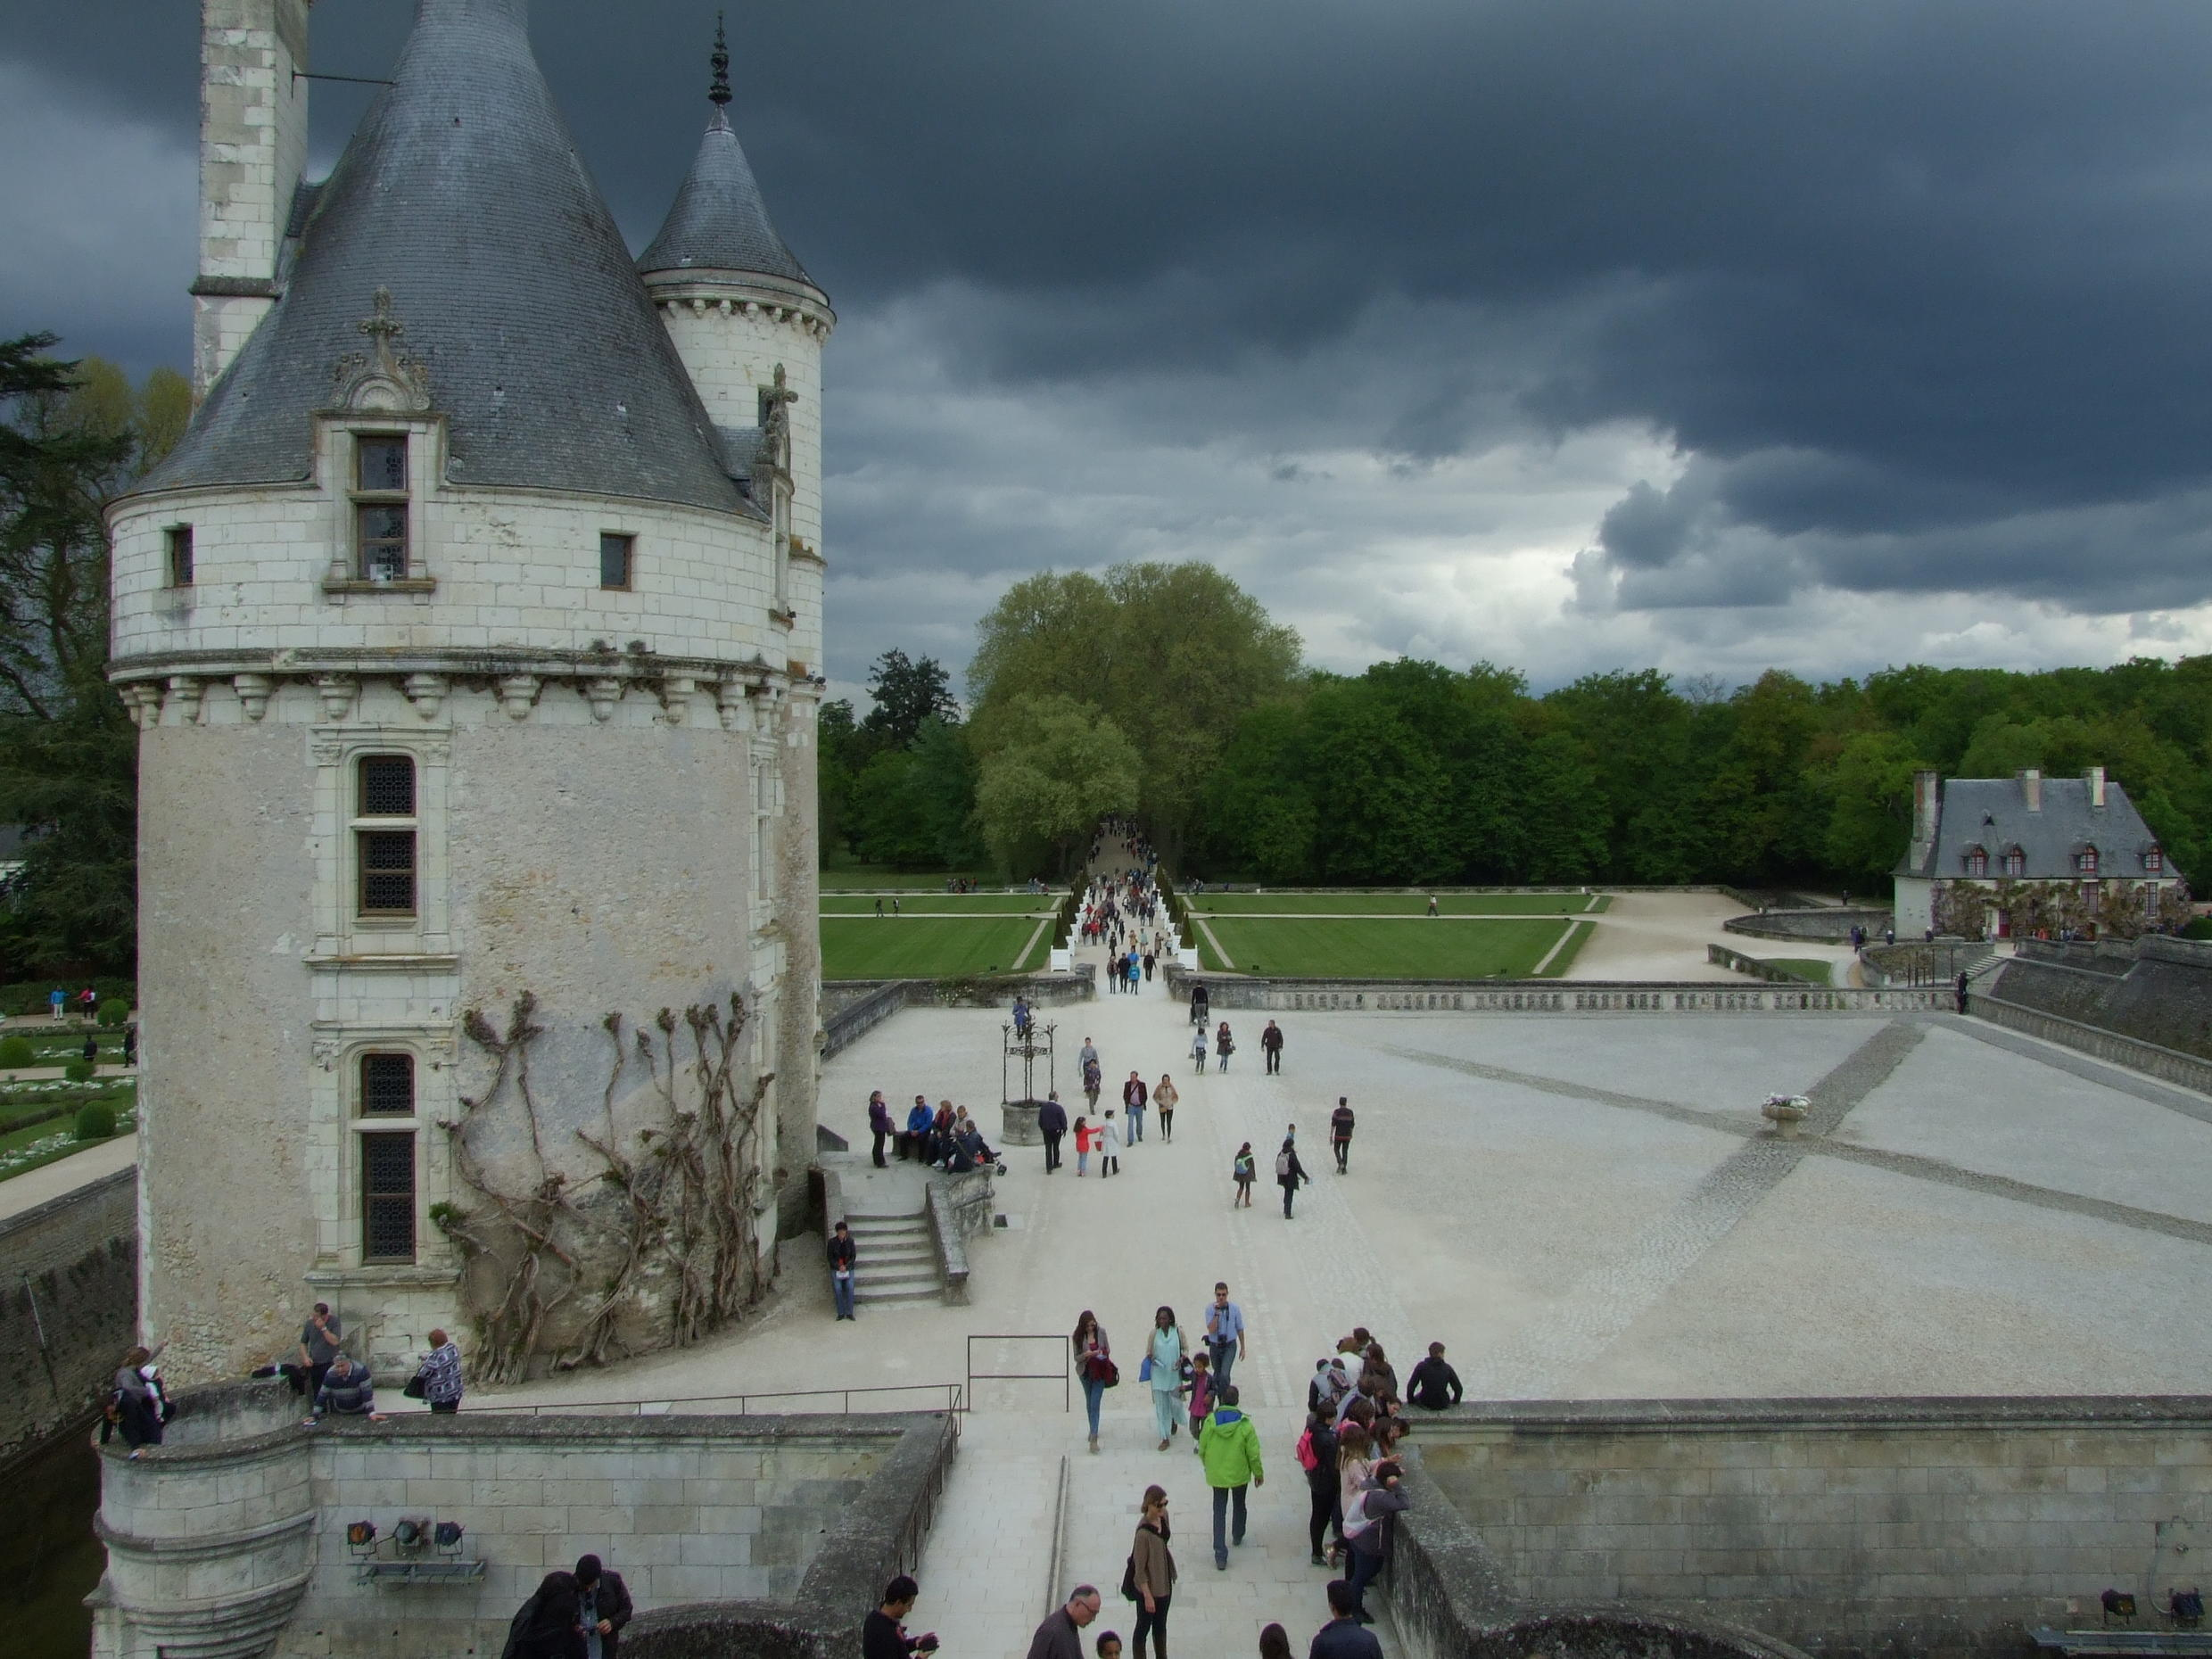 The Château de Chenonceau is the most-visited site in the Loire Valley